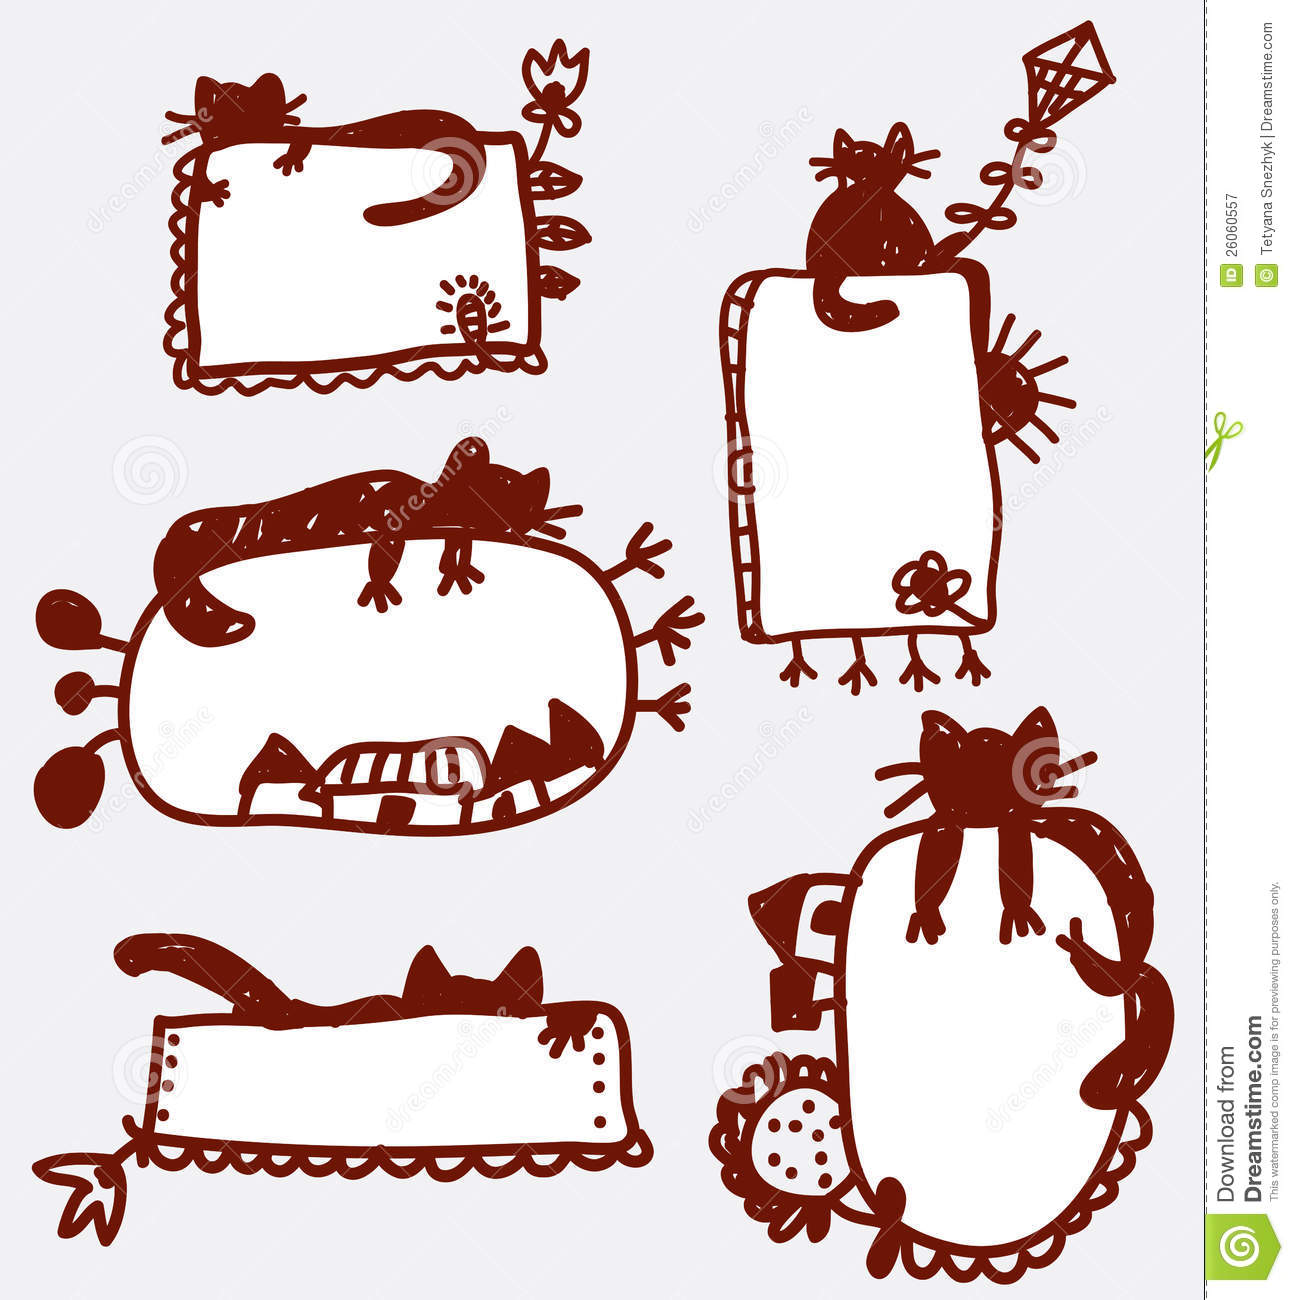 Fun Frame Clipart Doodle funny frames with cat